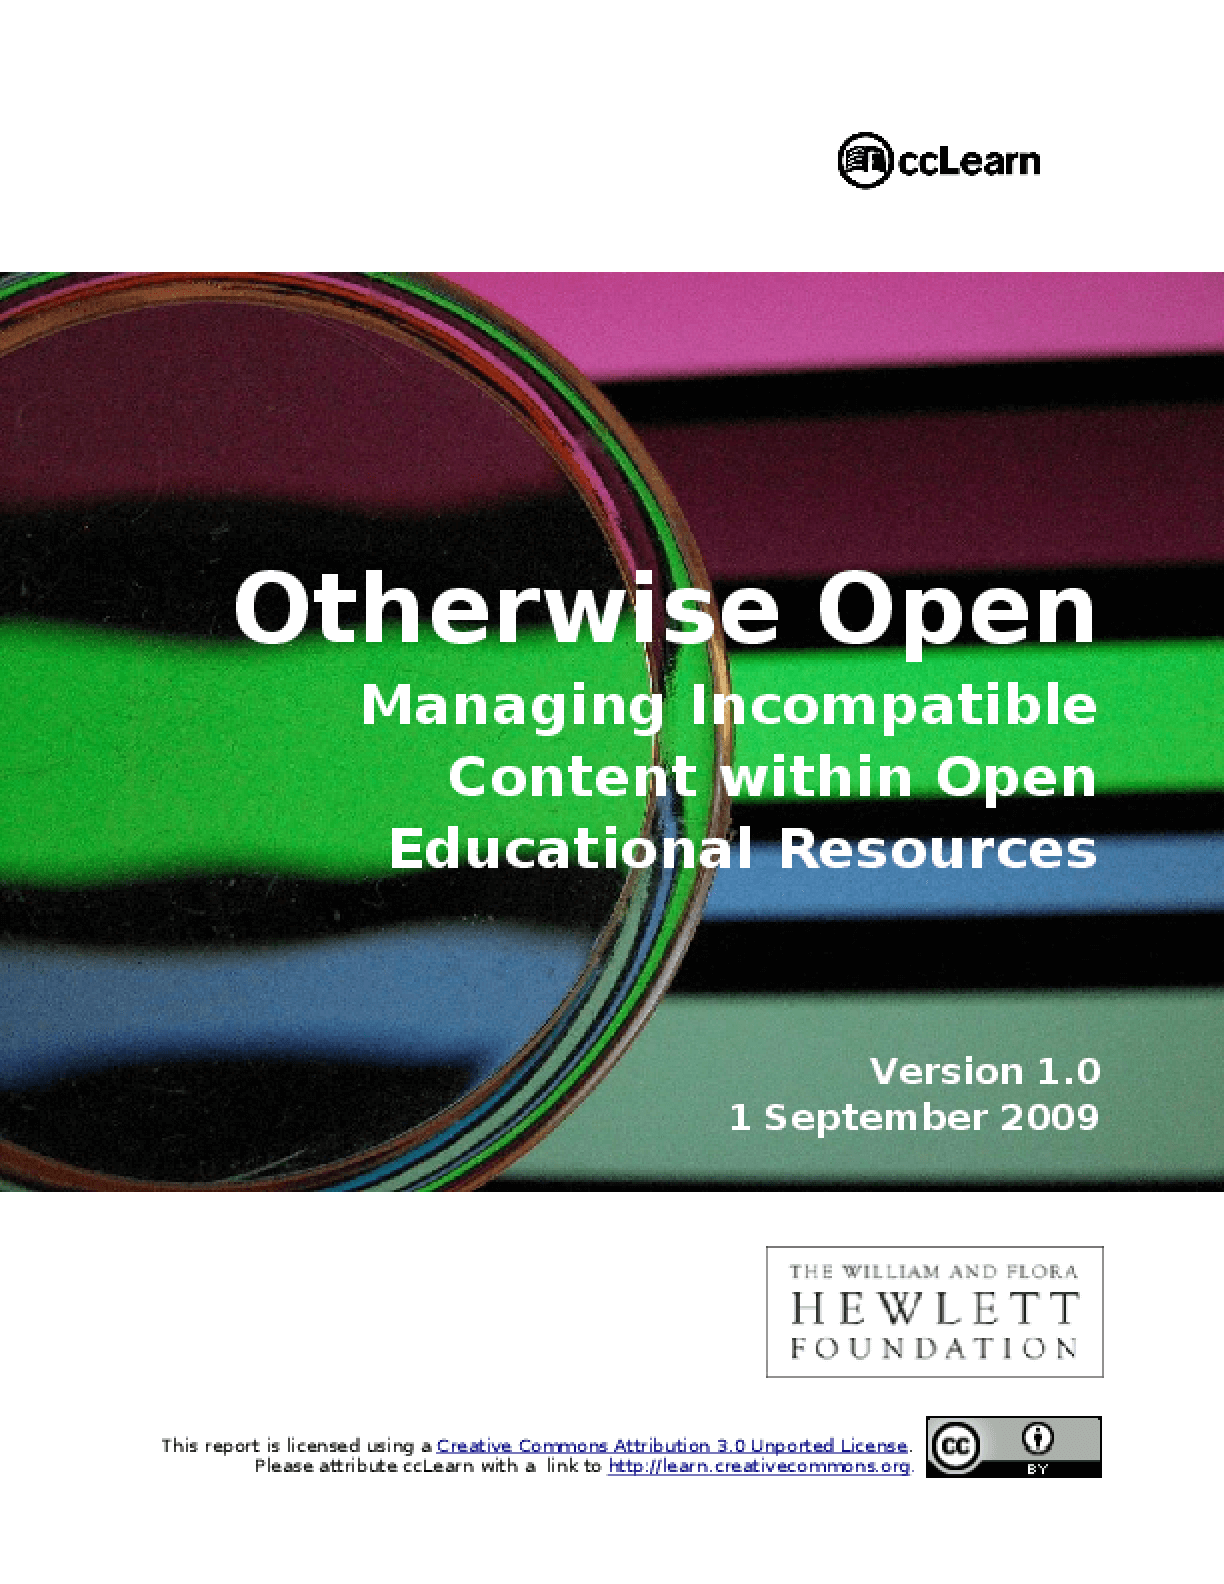 Otherwise Open: Managing Incompatible Content with Open Educational Resources